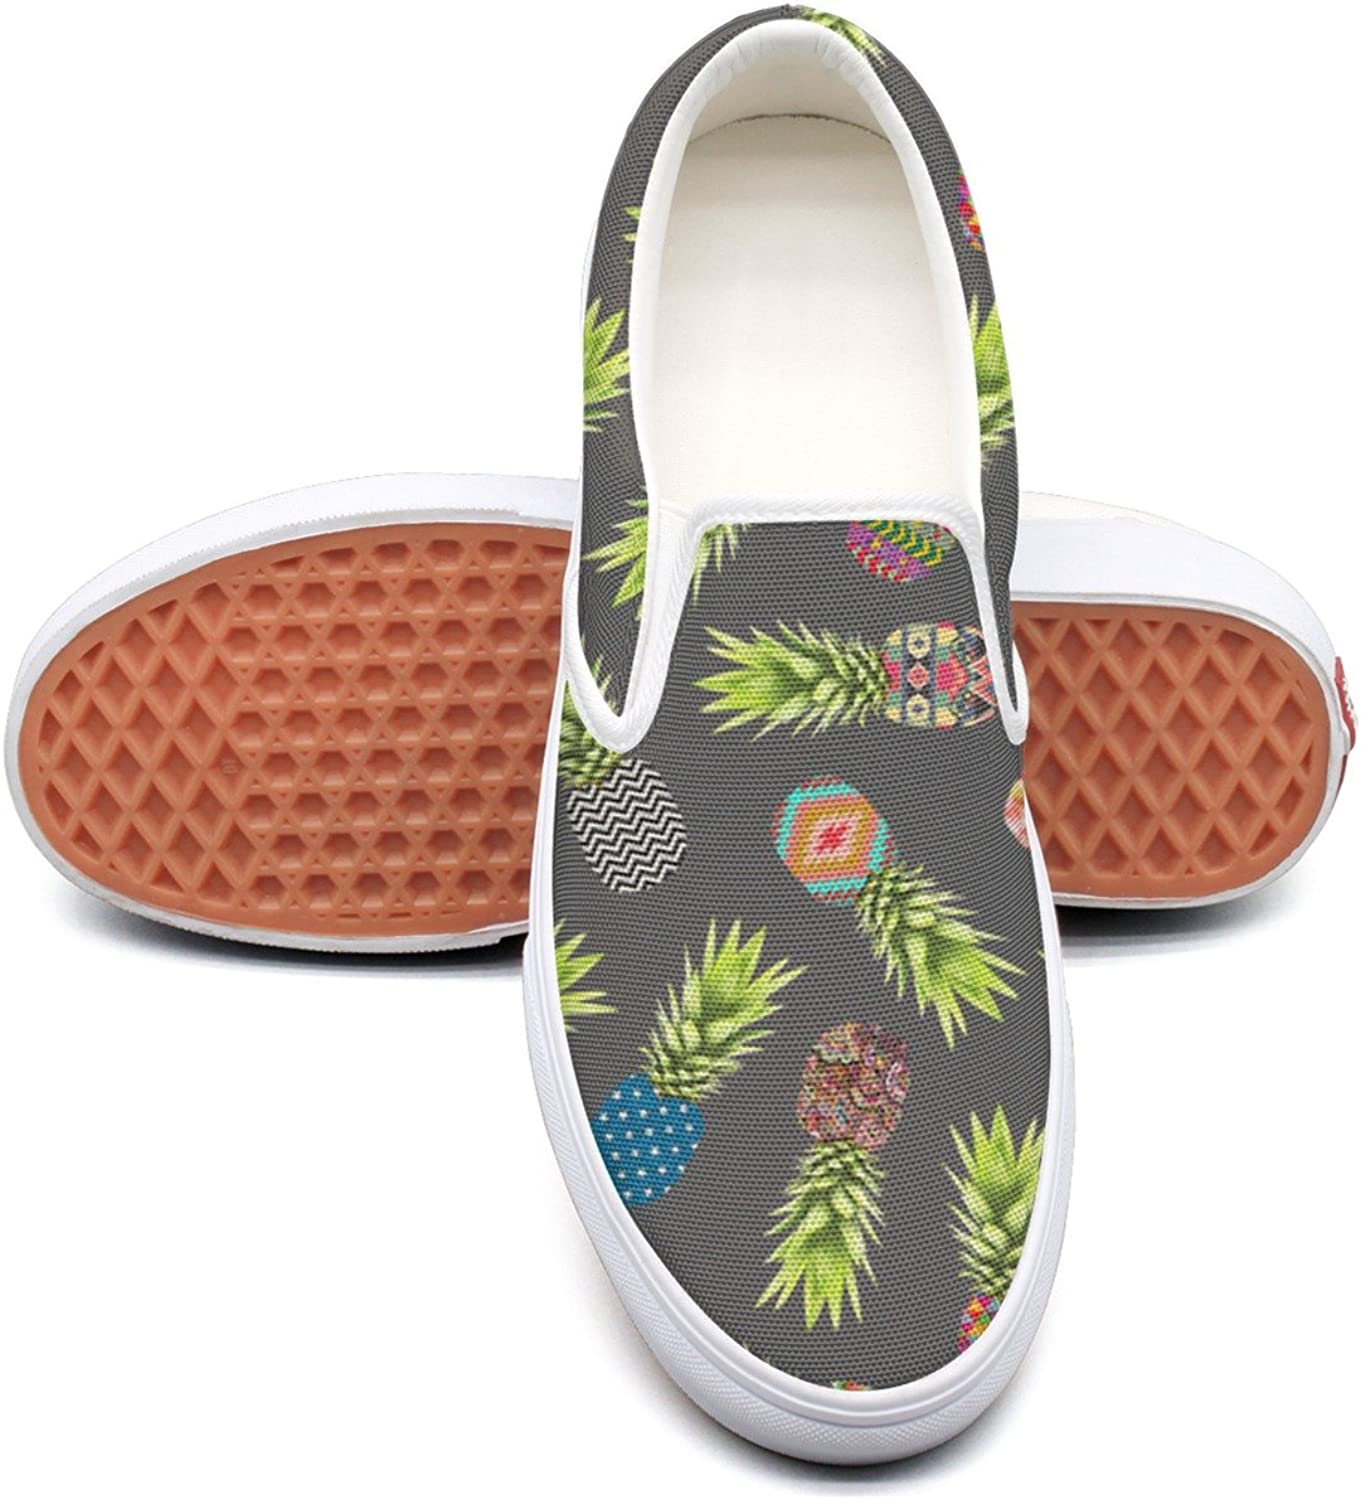 SEERTED Abstract Pineapples Pattern Basketball Sneakers for Women